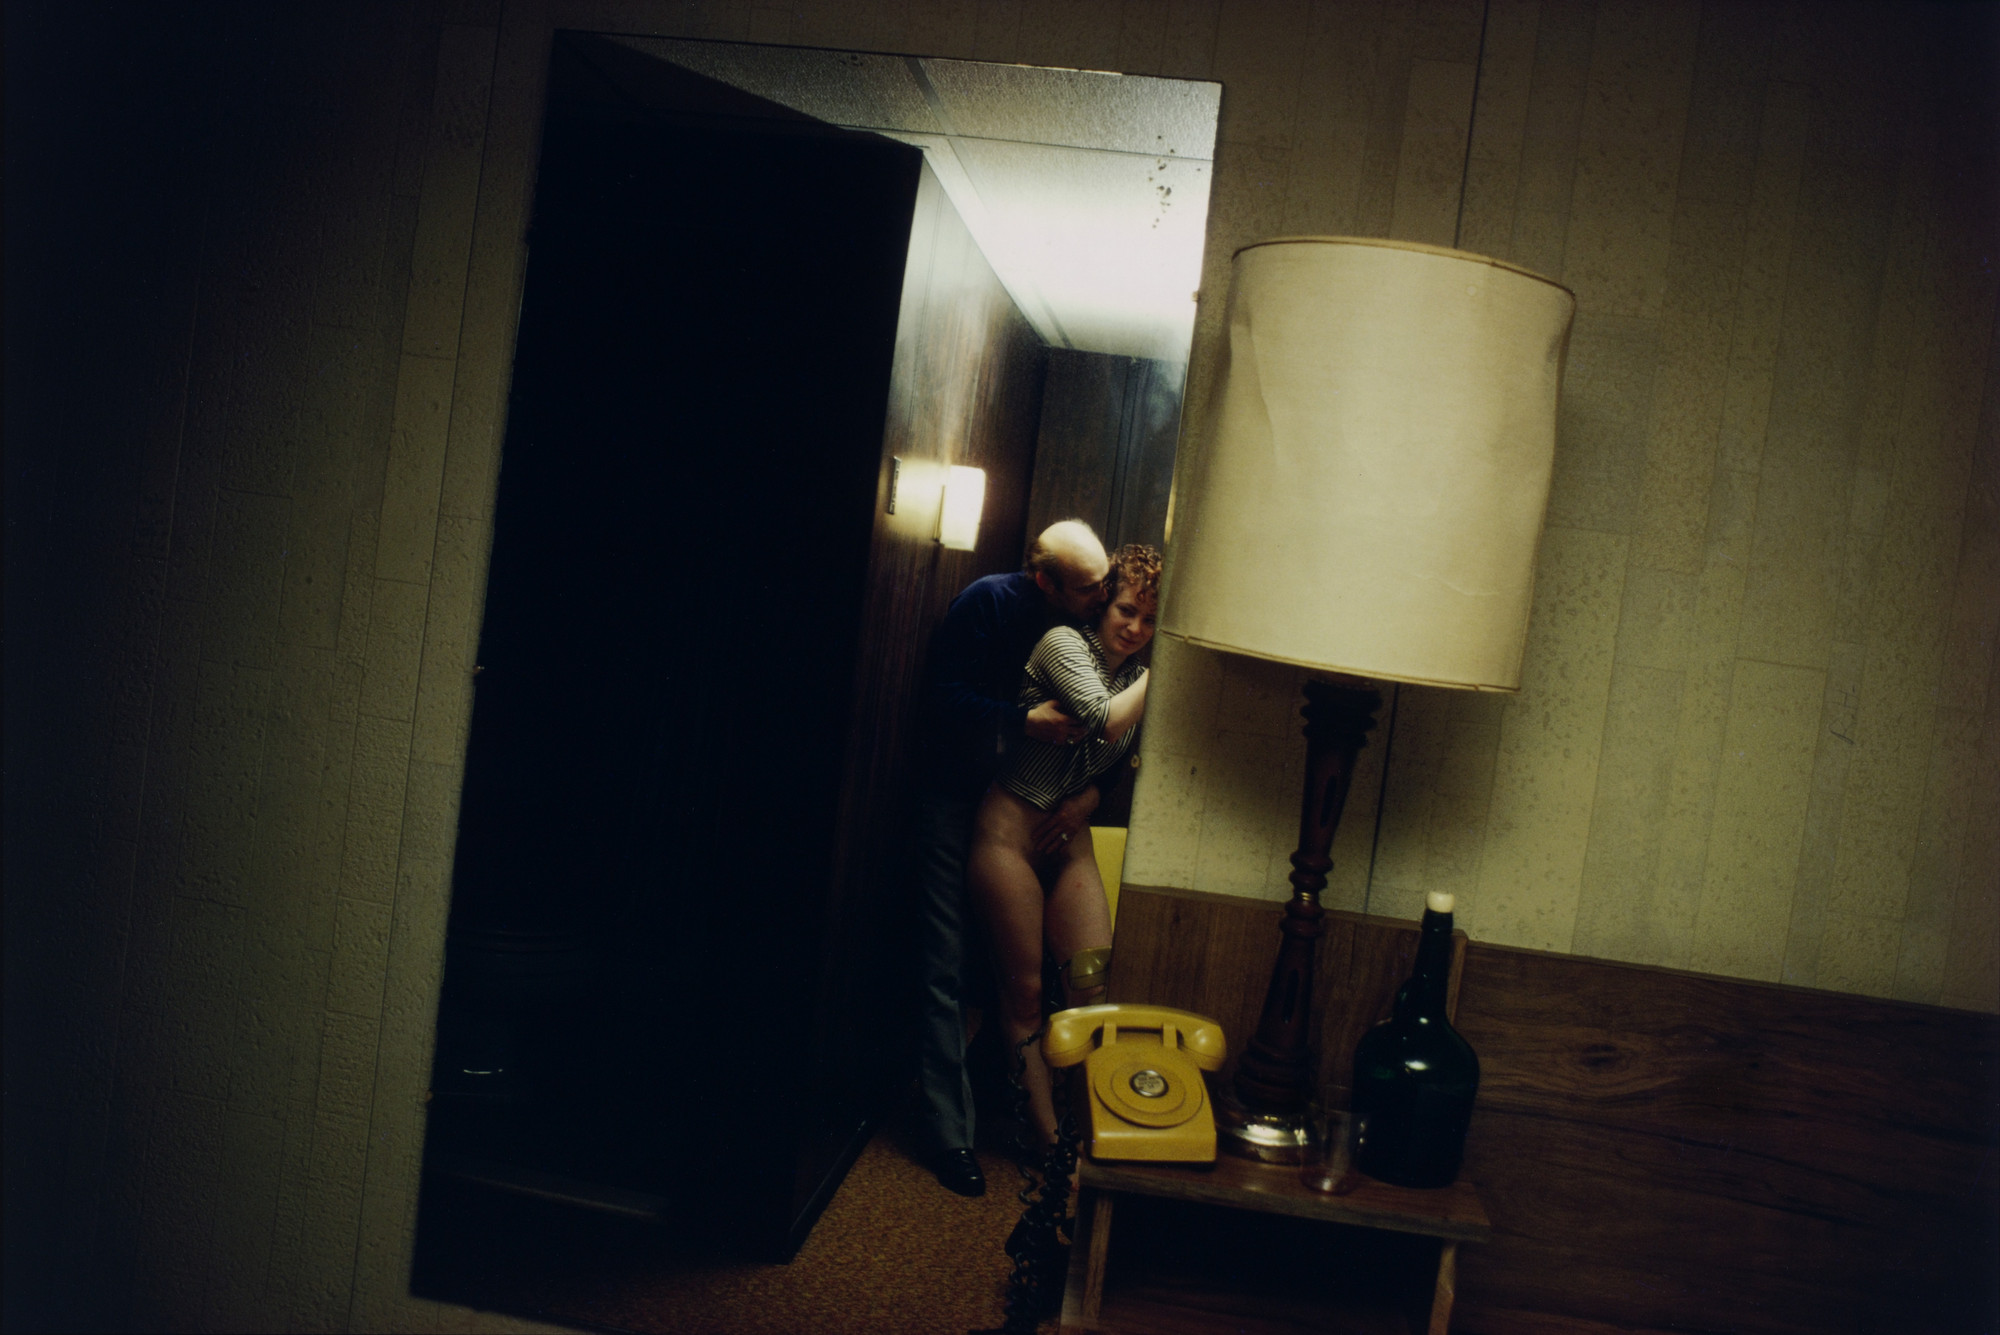 Nan Goldin. Nan and Dickie in the York Motel, New Jersey. 1980